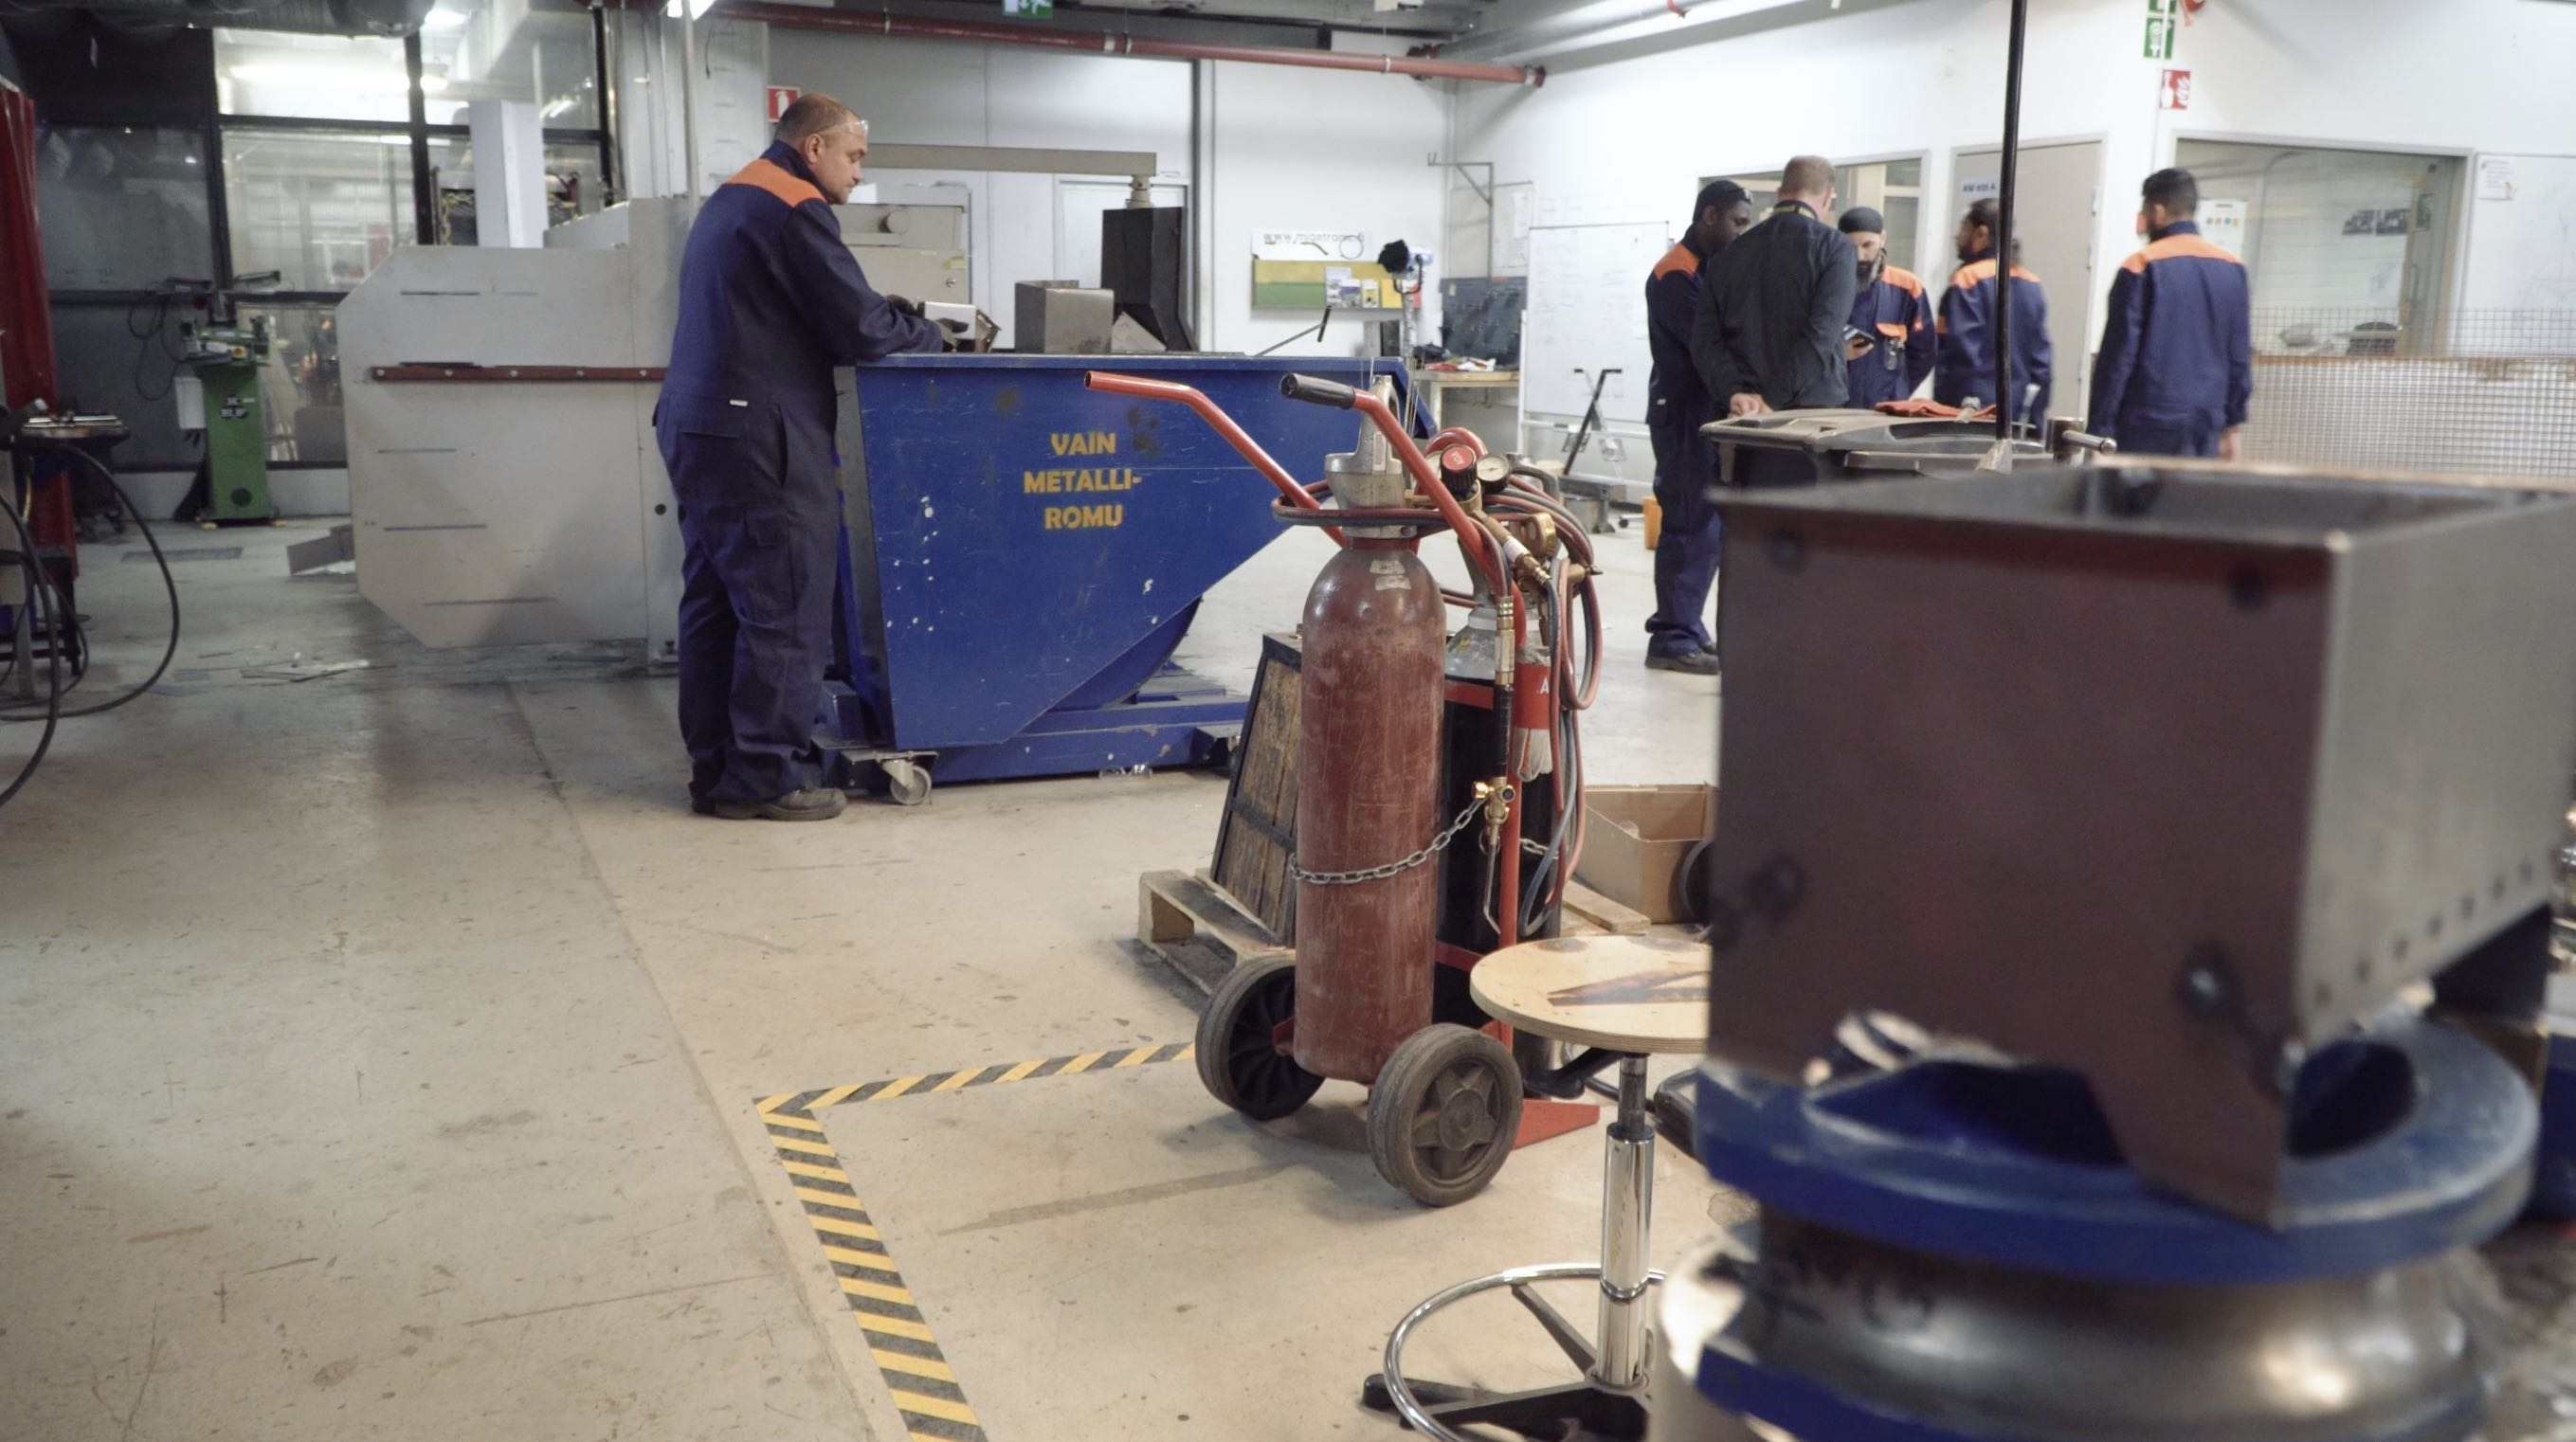 TAW – New teaching technology for welding